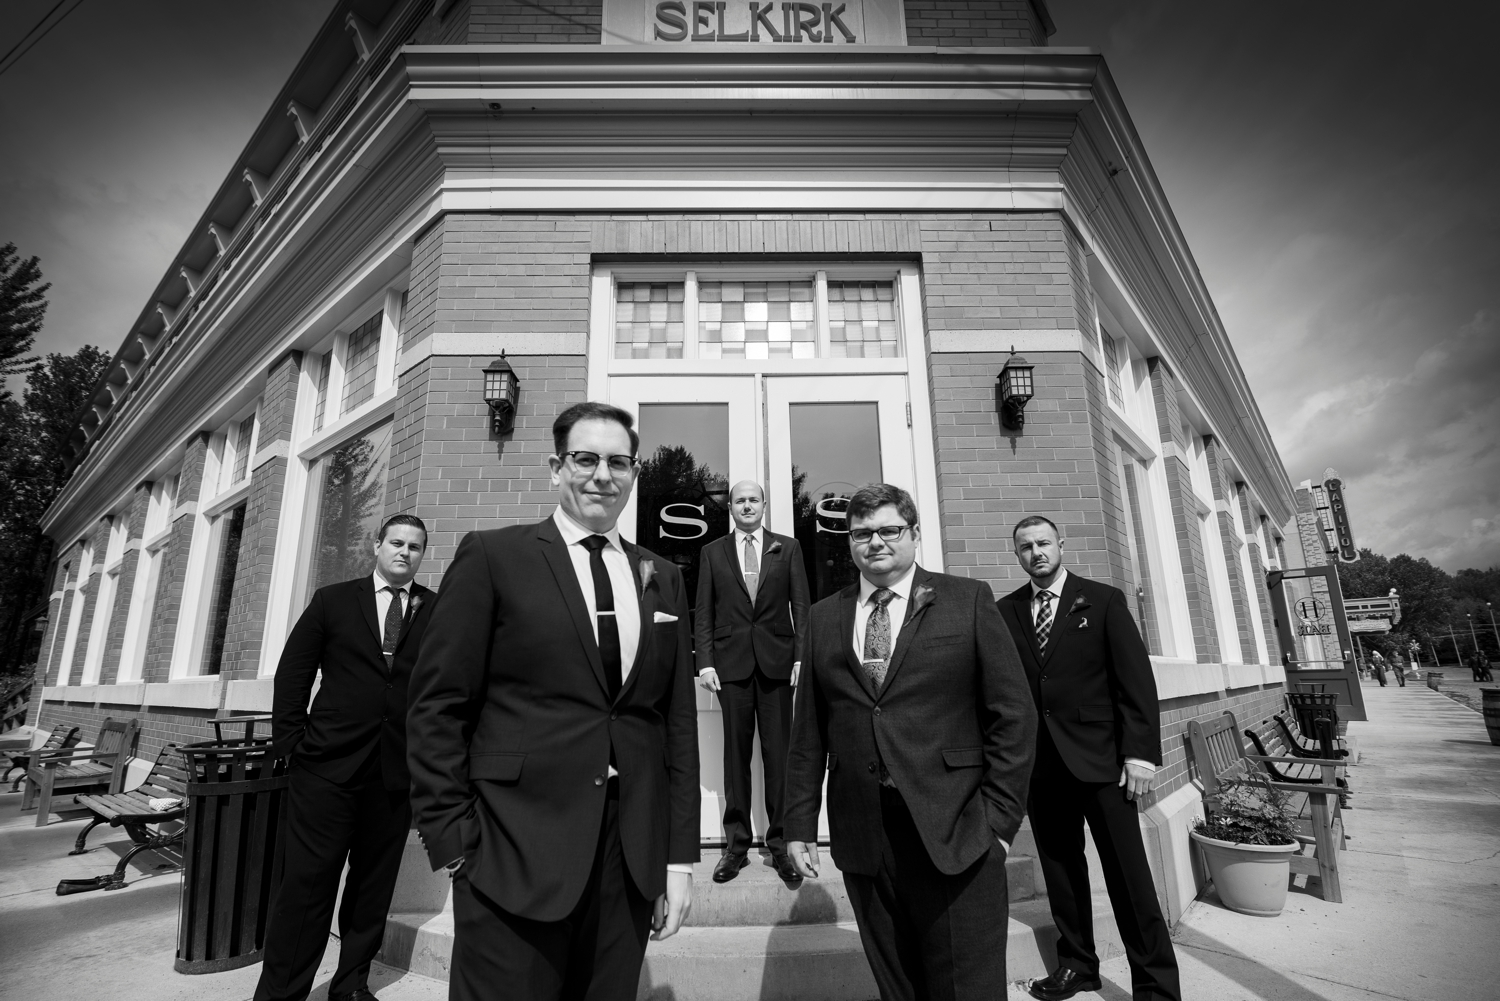 Groom and his groomsman in front of the Hotel Selkirk